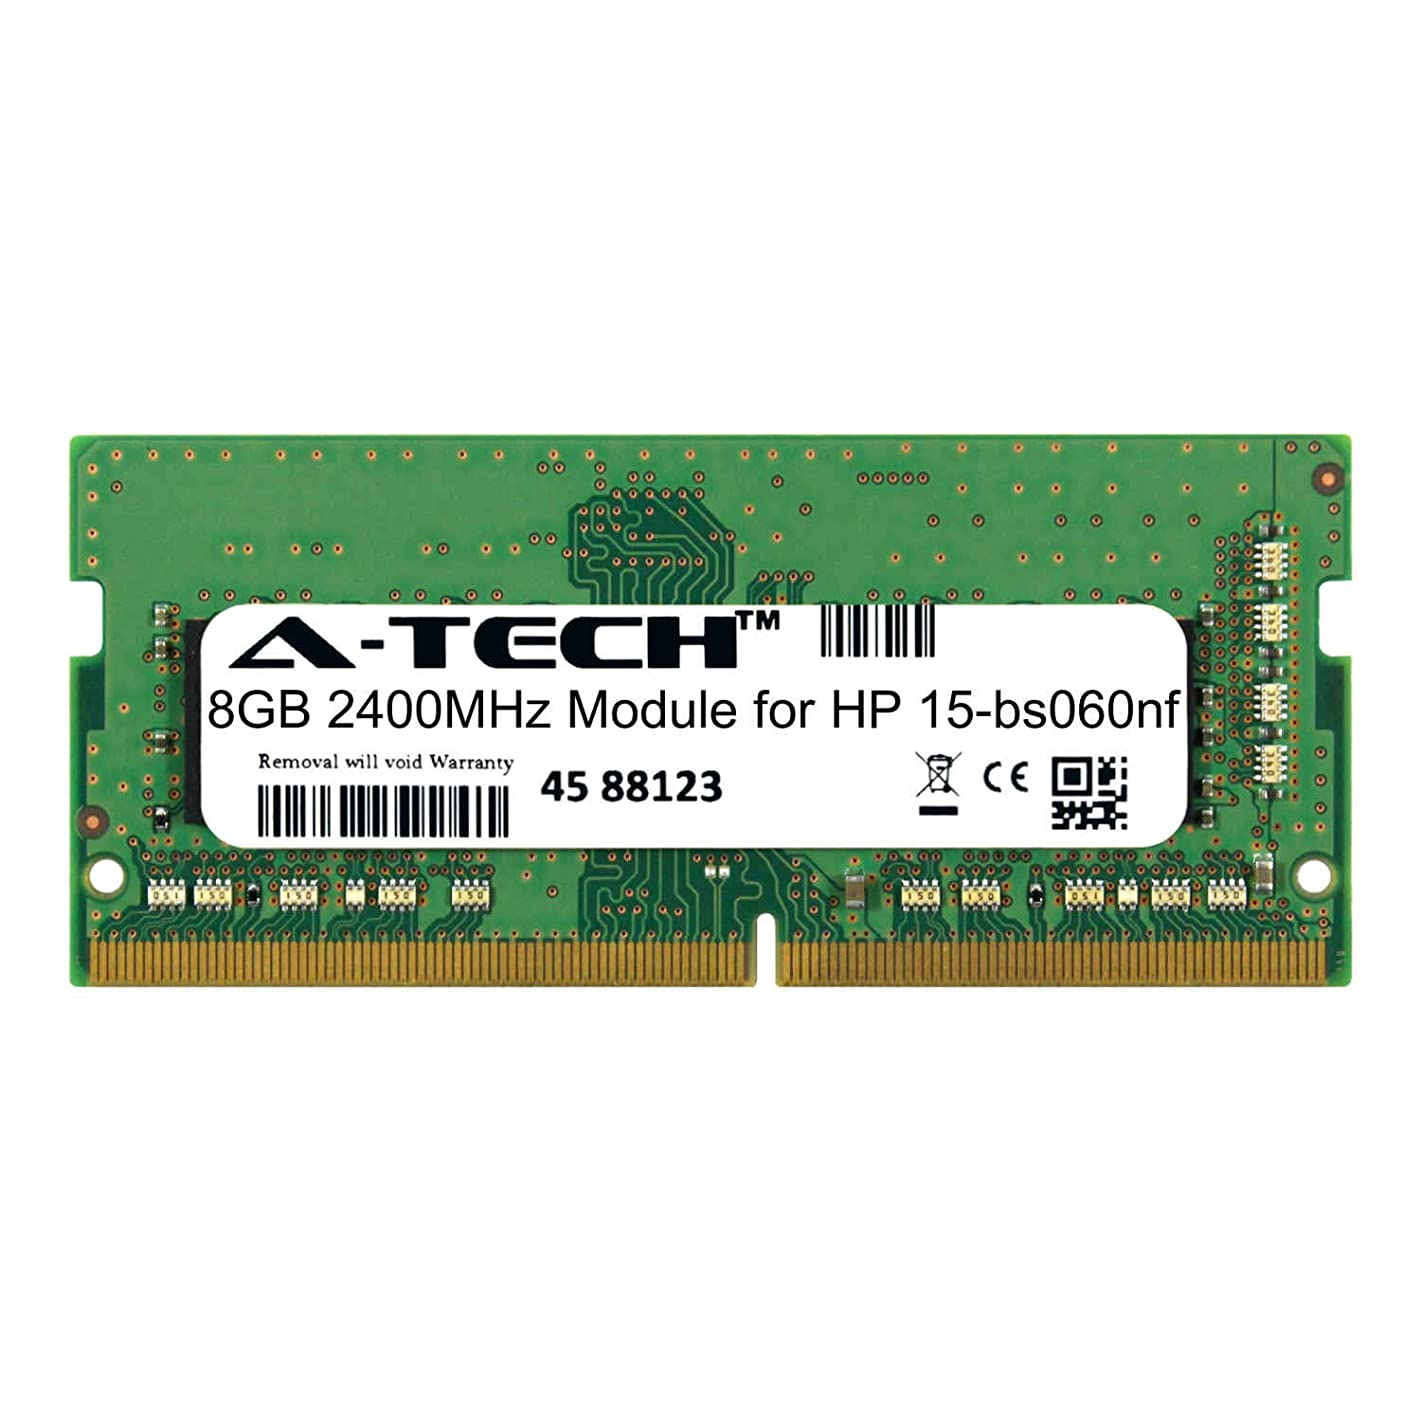 A-Tech 8GB Module for HP 15-bs060nf Laptop & Notebook Compatible DDR4 2400Mhz Memory Ram (ATMS380576A25827X1)